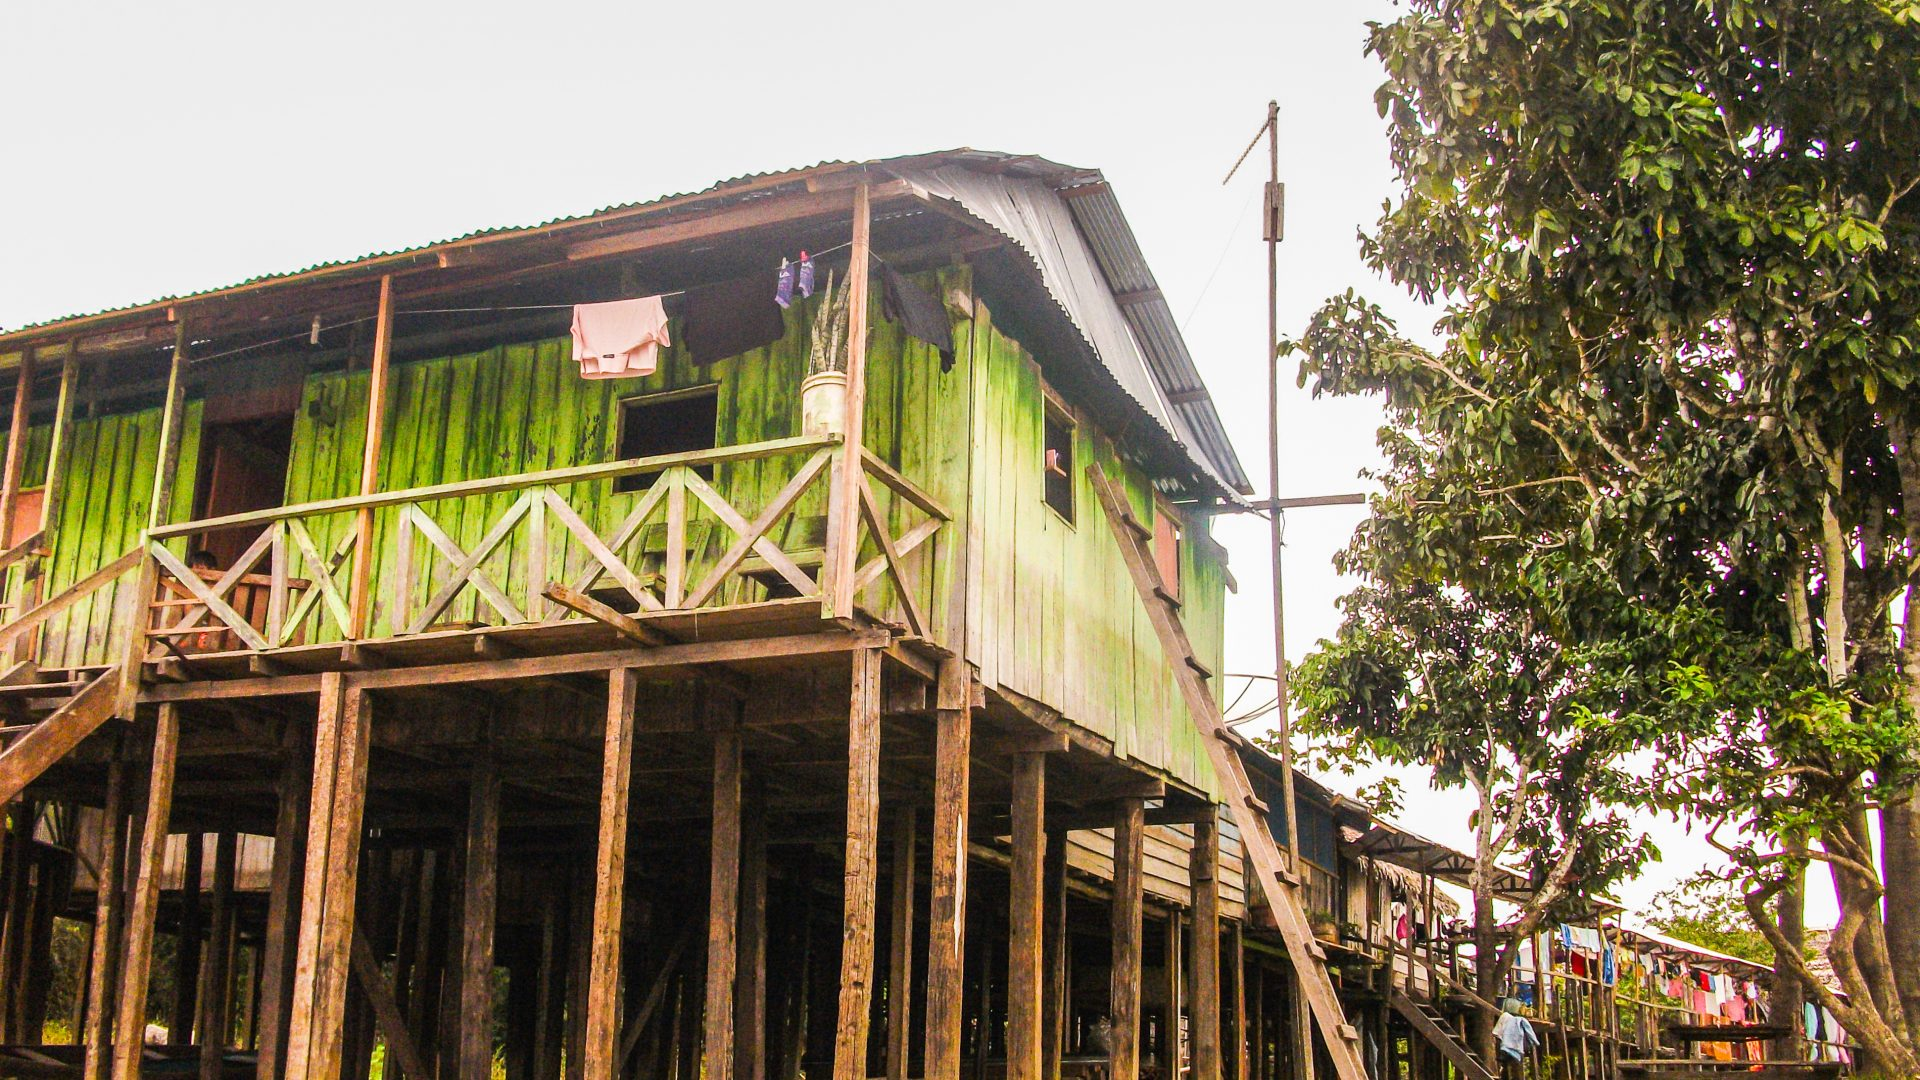 A house on stilts in the Amazon jungle.